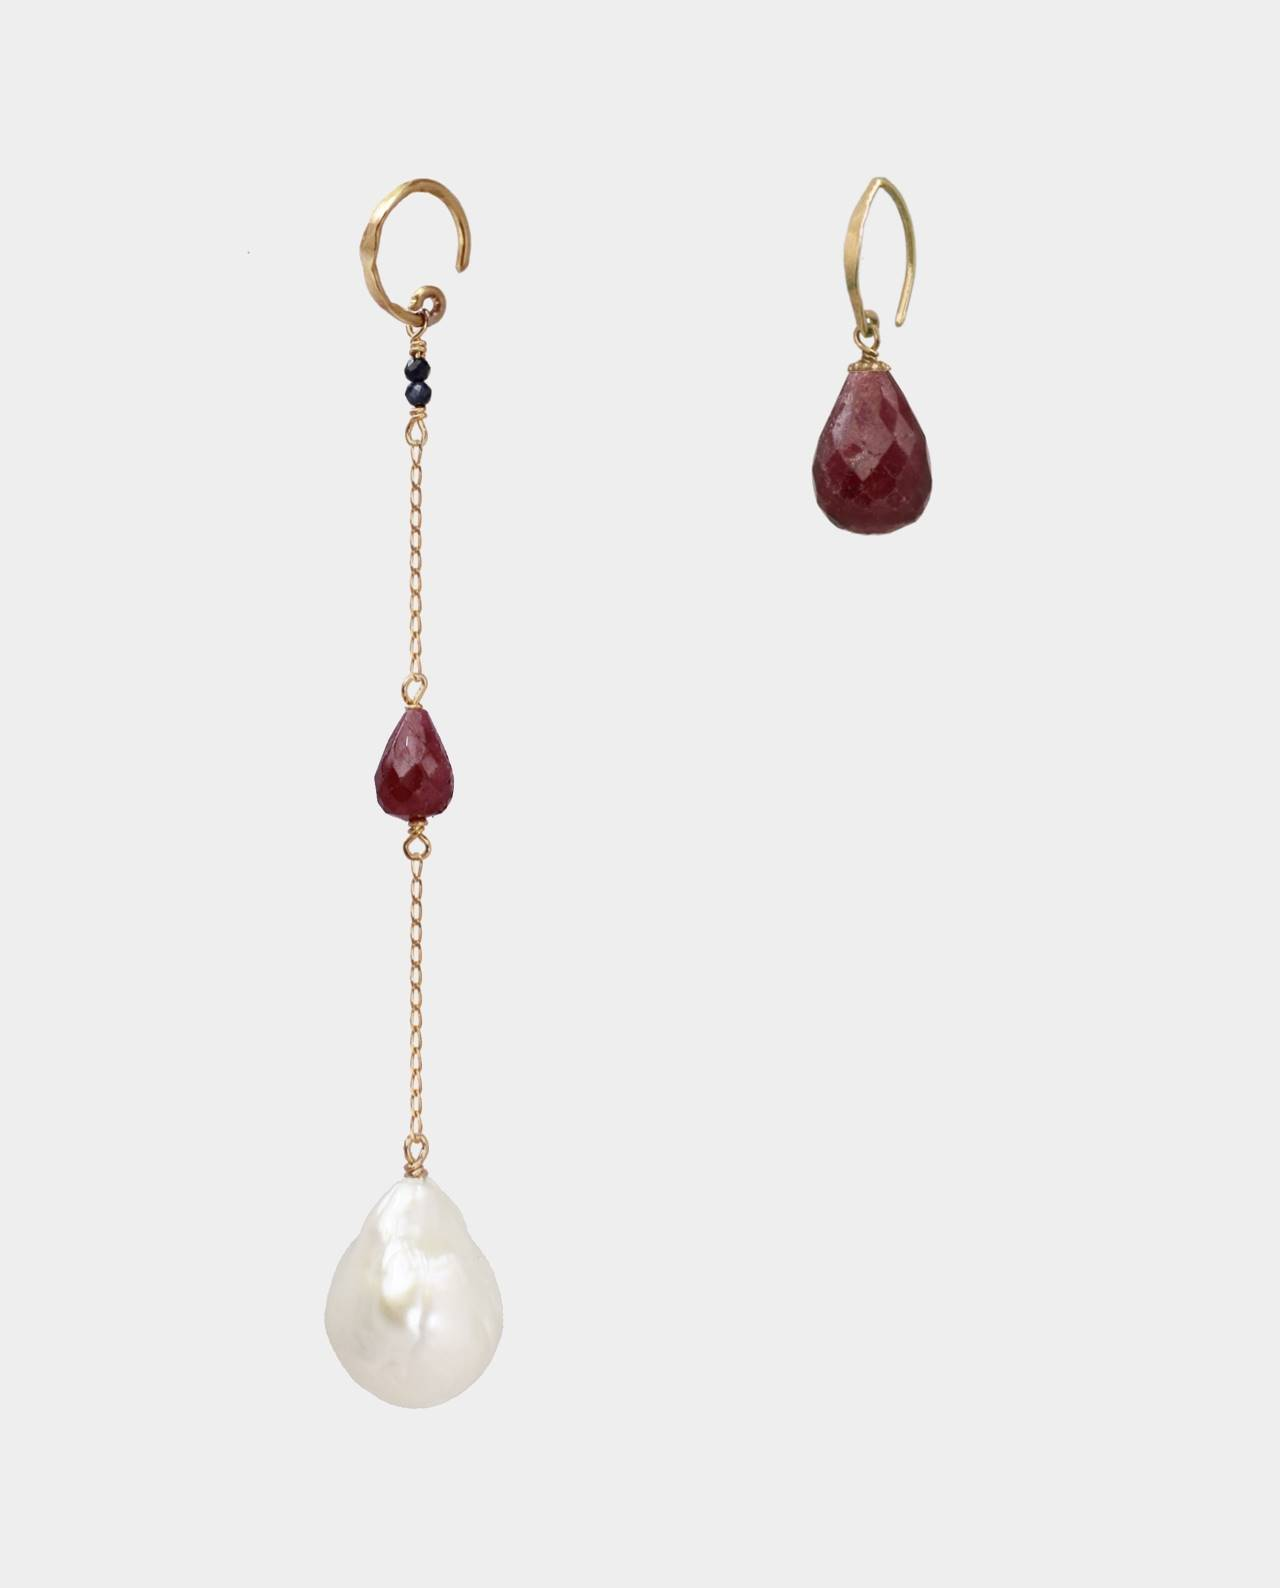 Rubies and pearls in original Danish design with personality. Popular pieces of jewelry for parties and everyday life